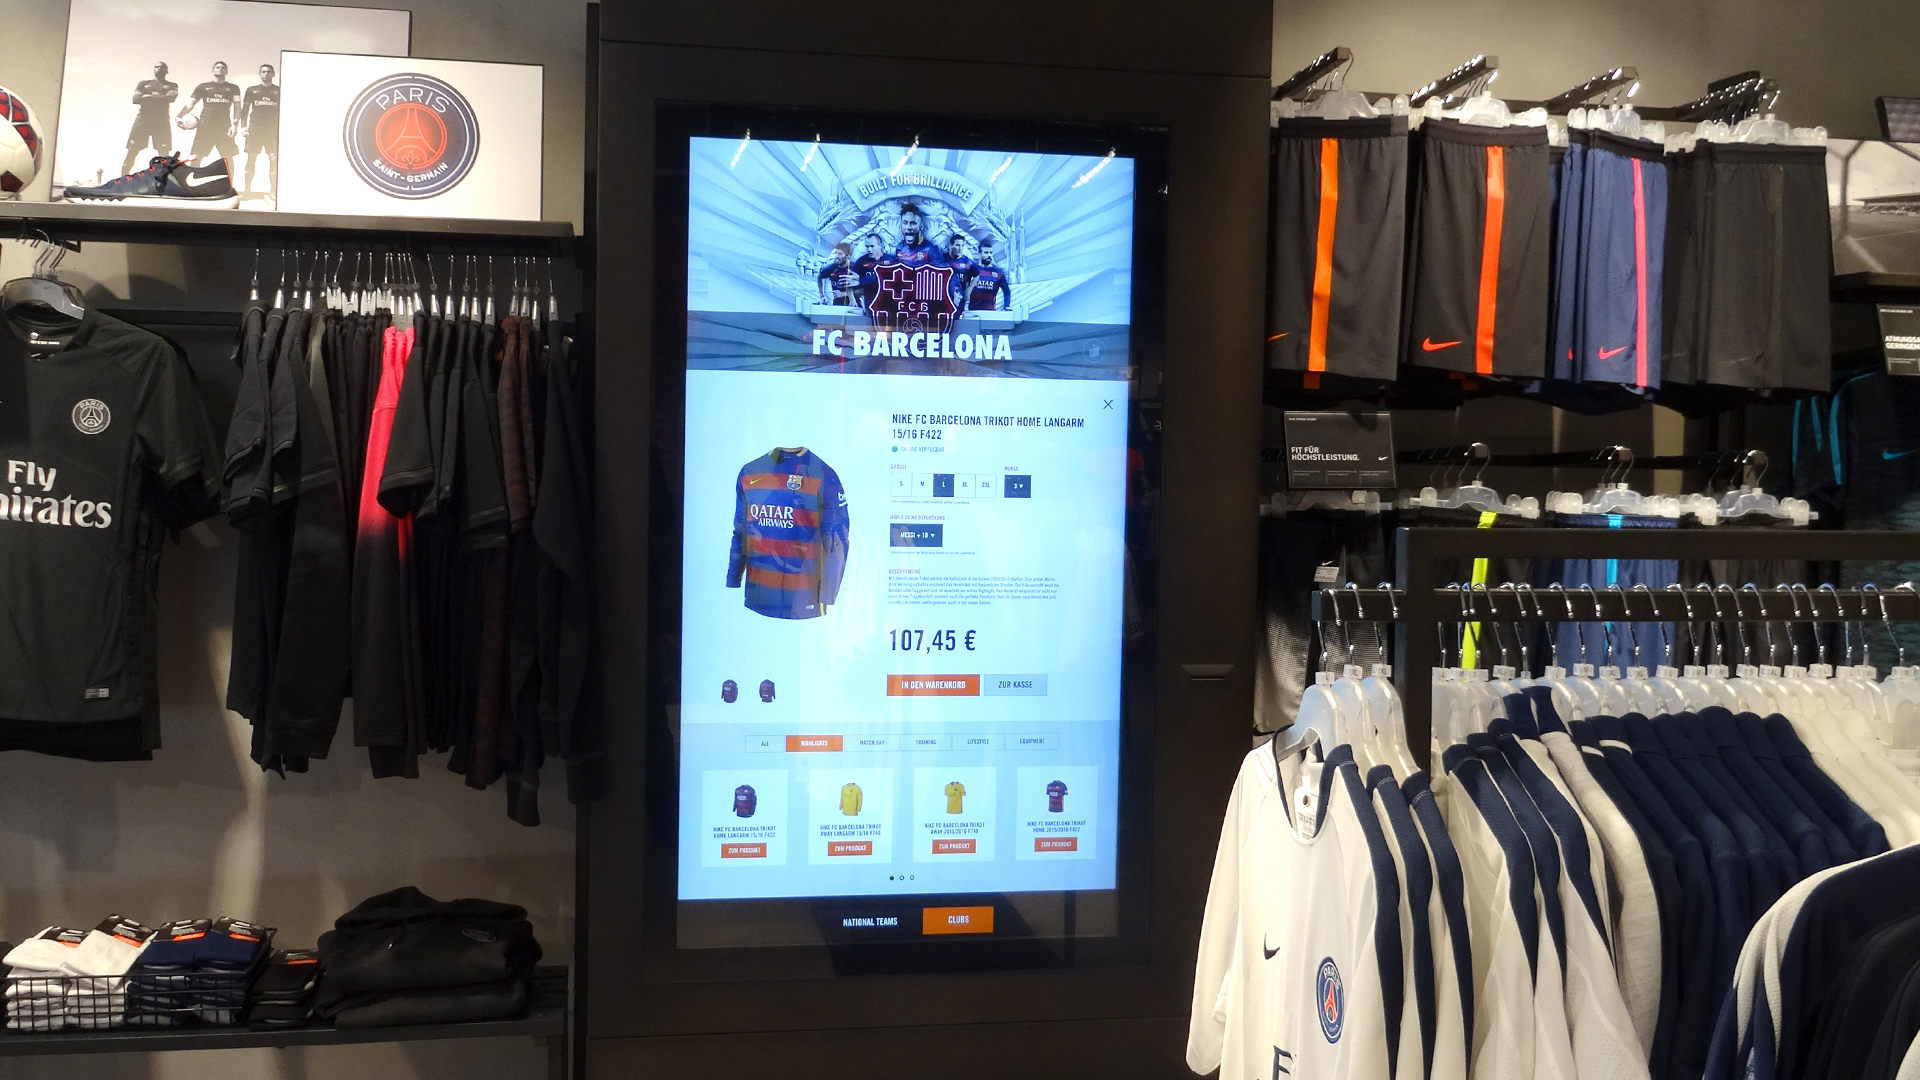 nike digital retail experience replica kiosk auf 4k multitouch display